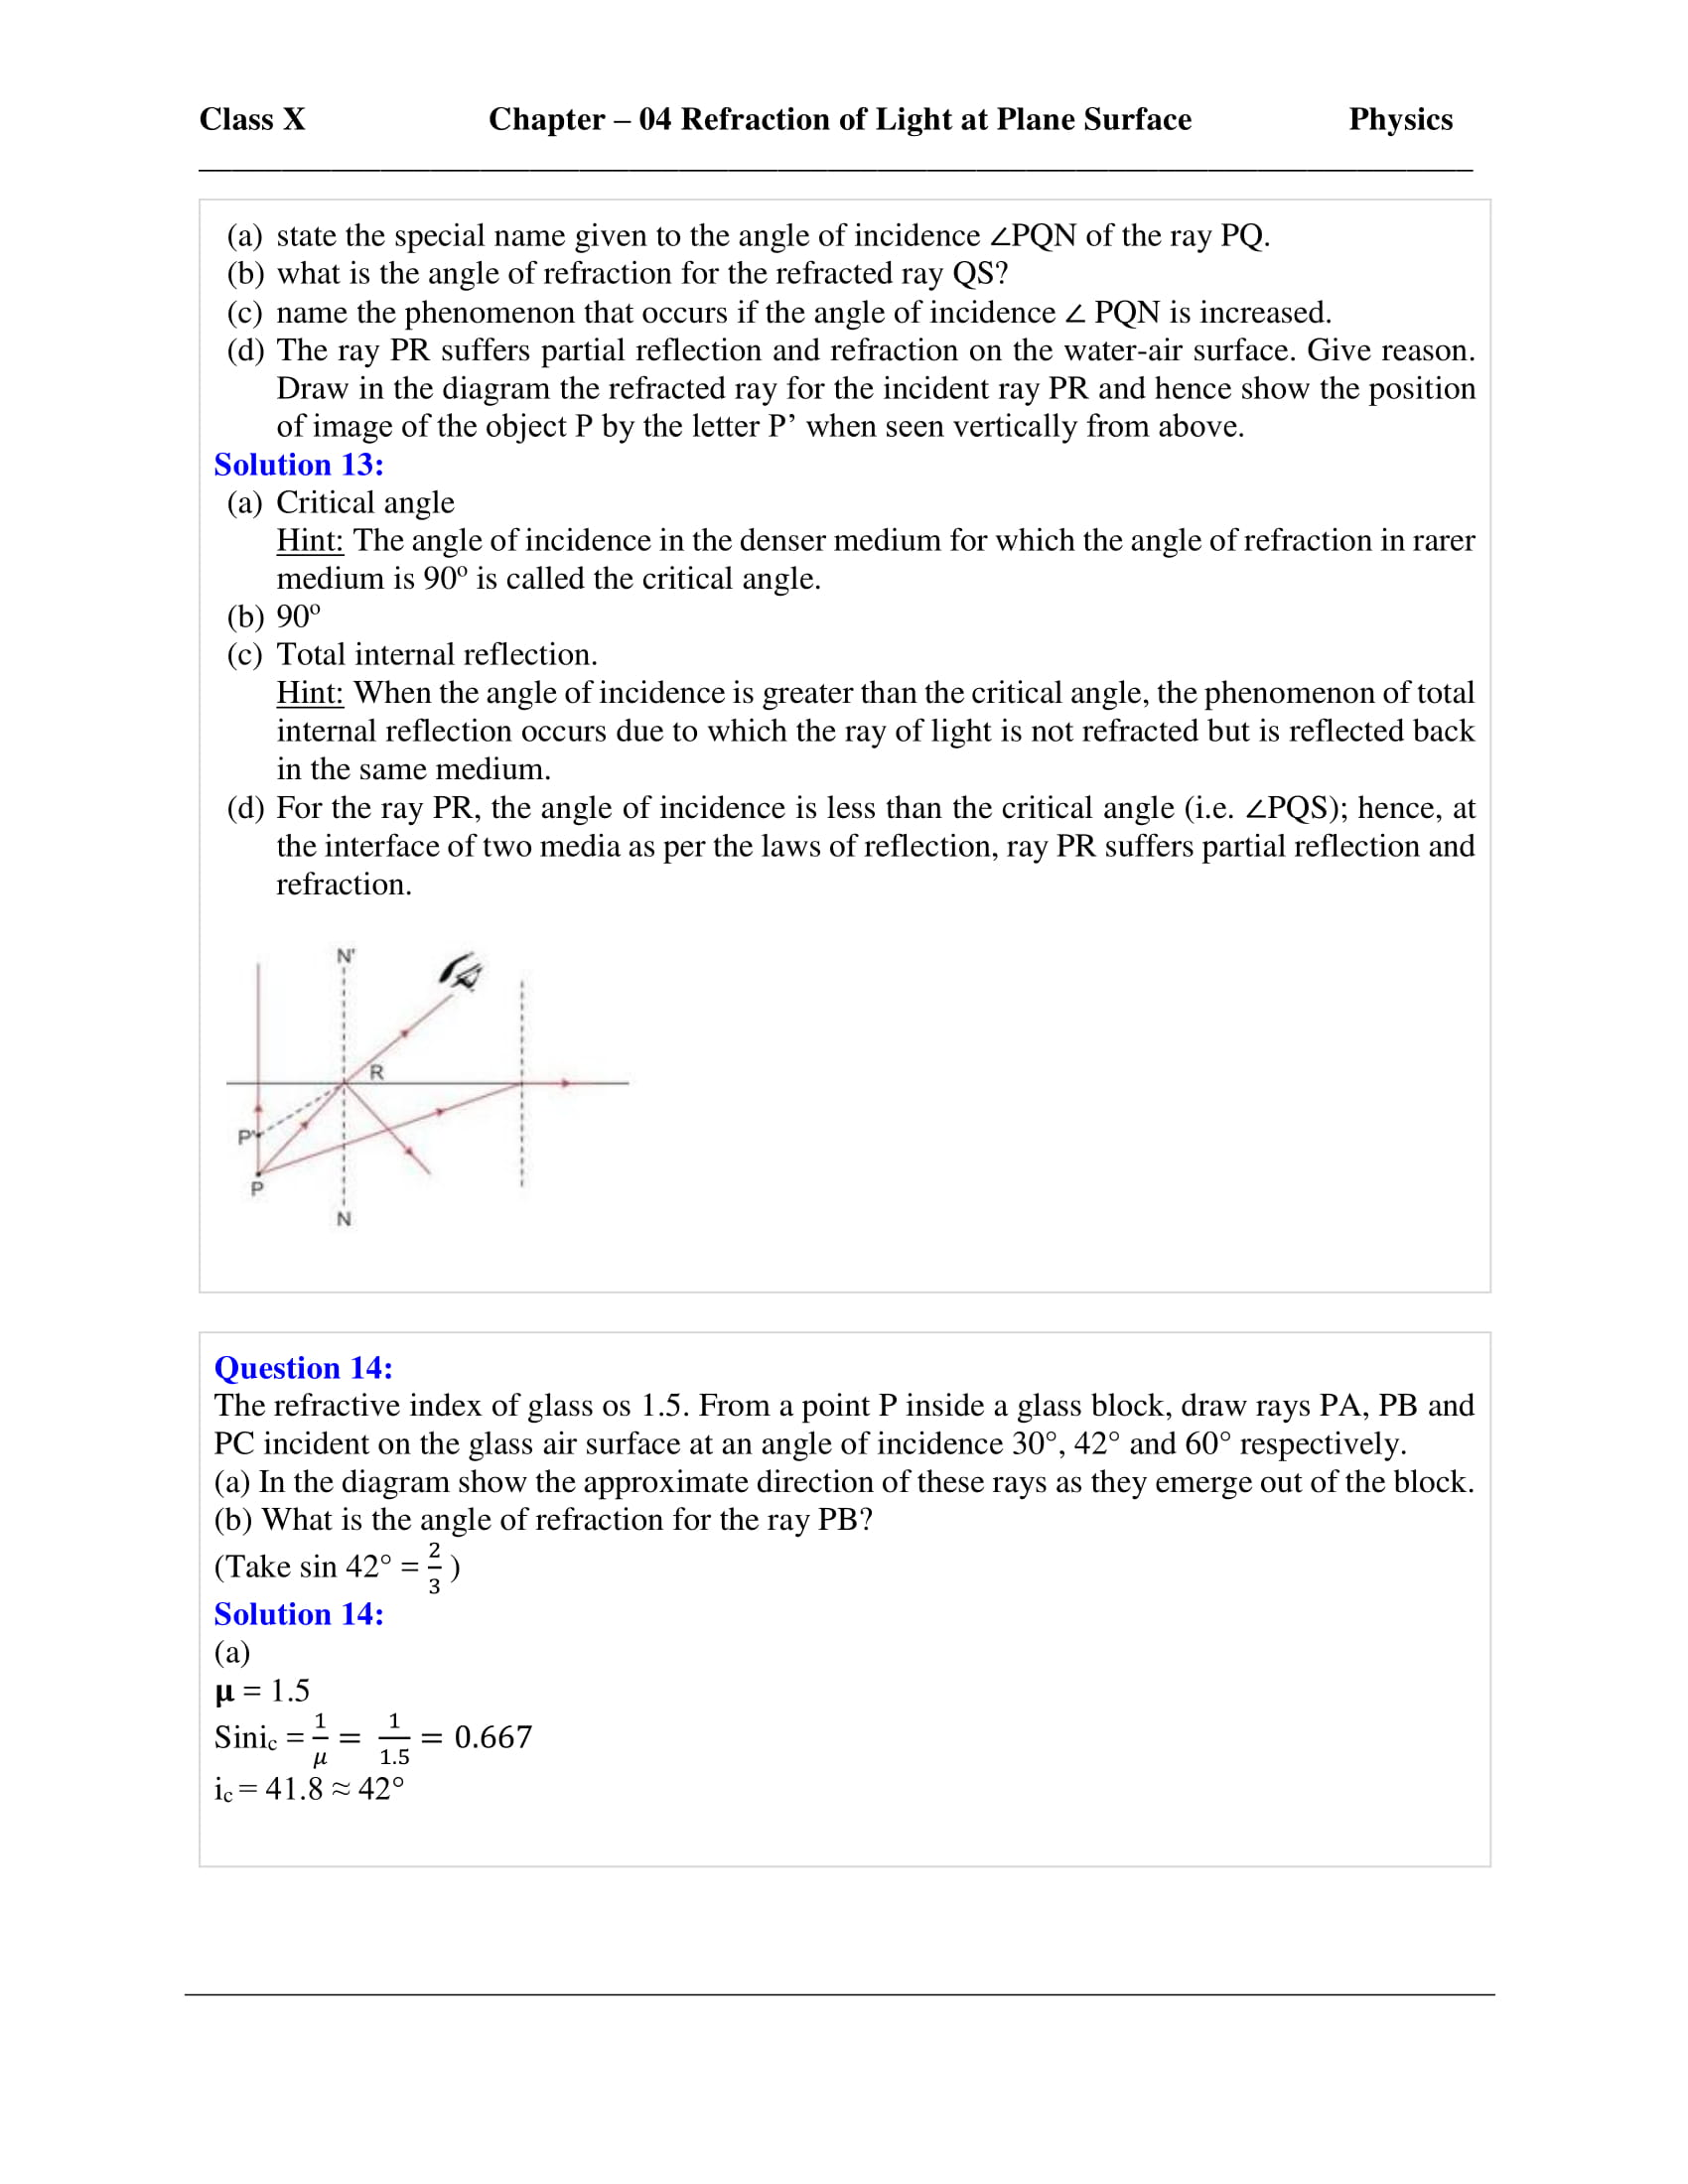 icse-selina-physics-solutions-class-10-chapter-4-refraction-of-light-at-plane-surfaces-32